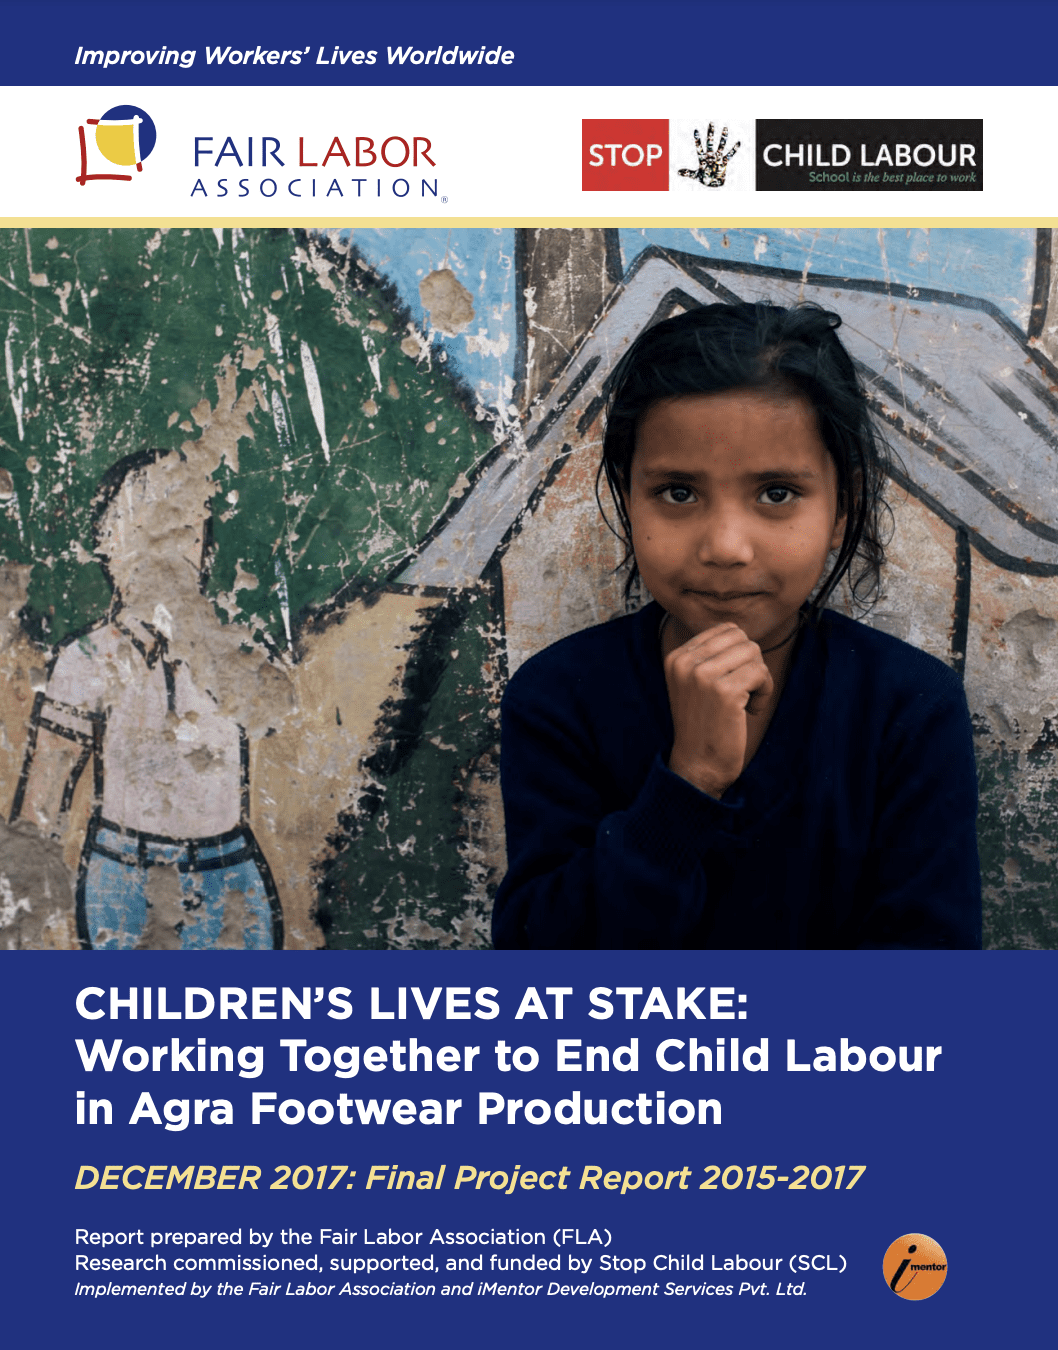 Children's Lives at Stake: Working Together to End Child Labour in Agra Footwear Production